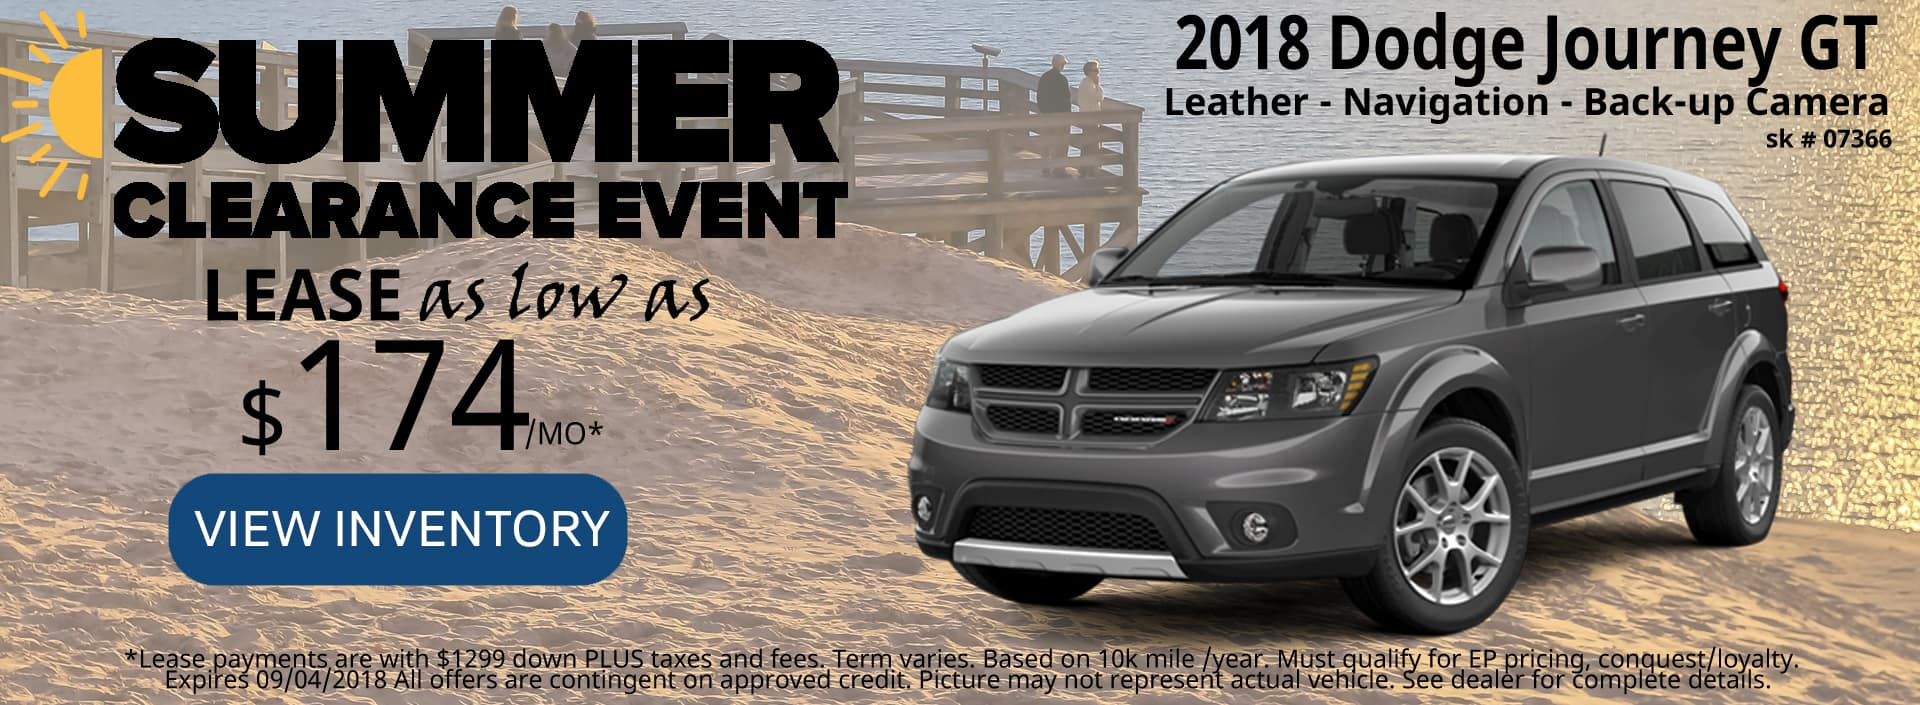 August 2018 Special Dodge Journey GT